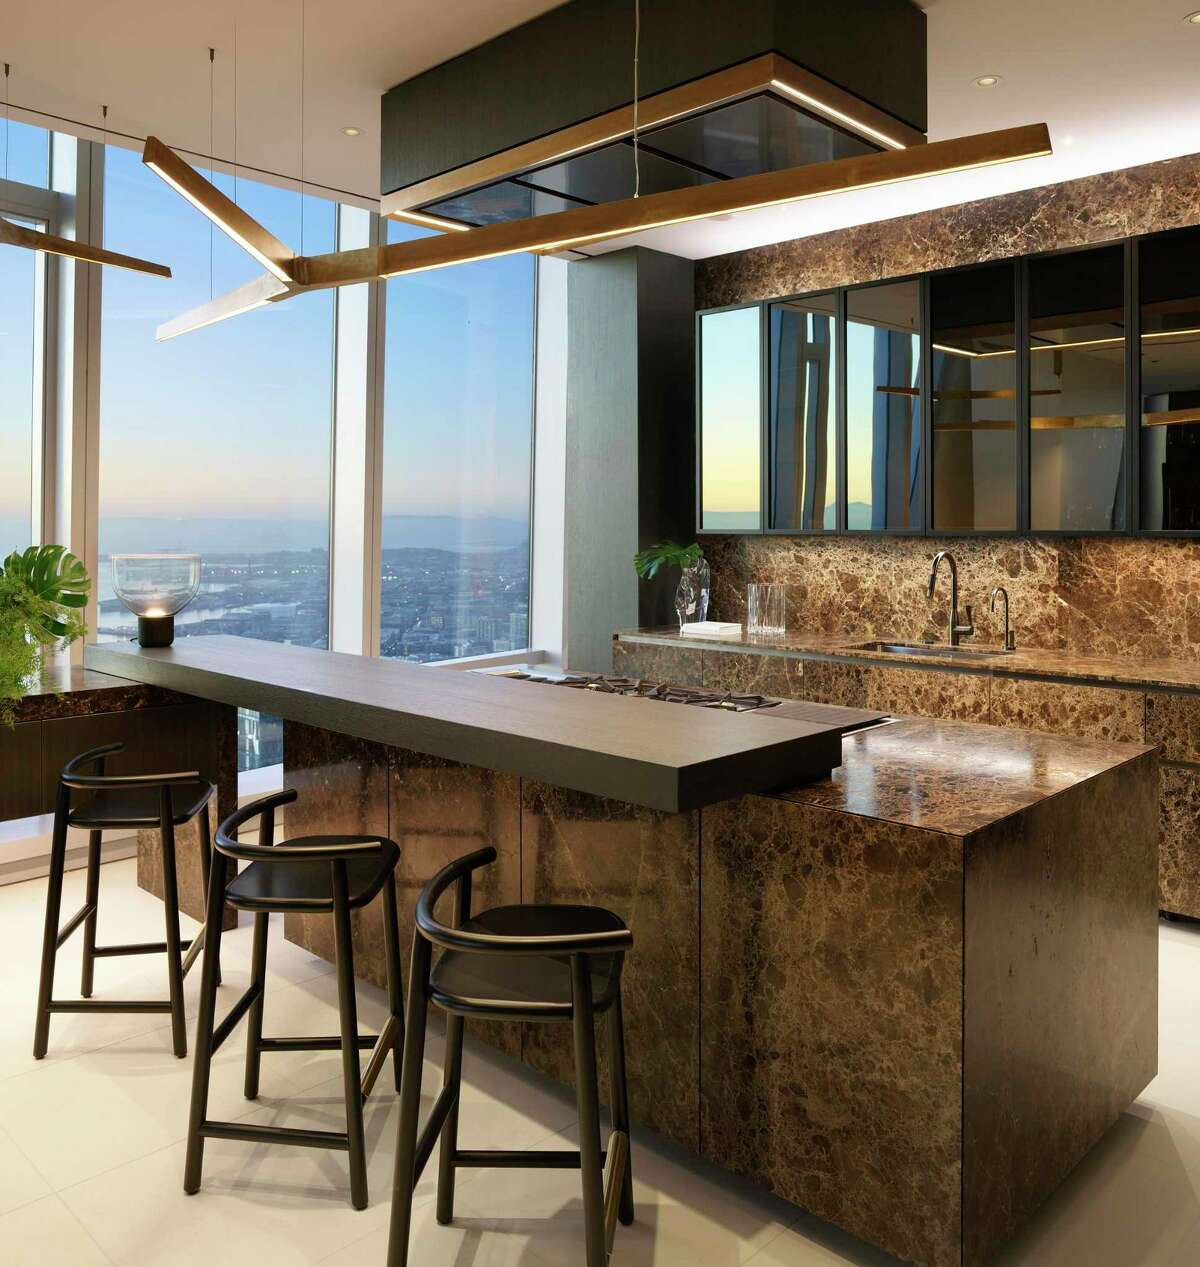 Limestone flooring, with Rossana custom kitchen cabinets and counter seating, Gaggenau appliances including refrigerator and freezer tower, double ovens, wine tower, dishwasher, five-burner cooktop, grill, and teppanyaki station finish the exhibition kitchen at the Grand Penthouse of 181 Fremont.